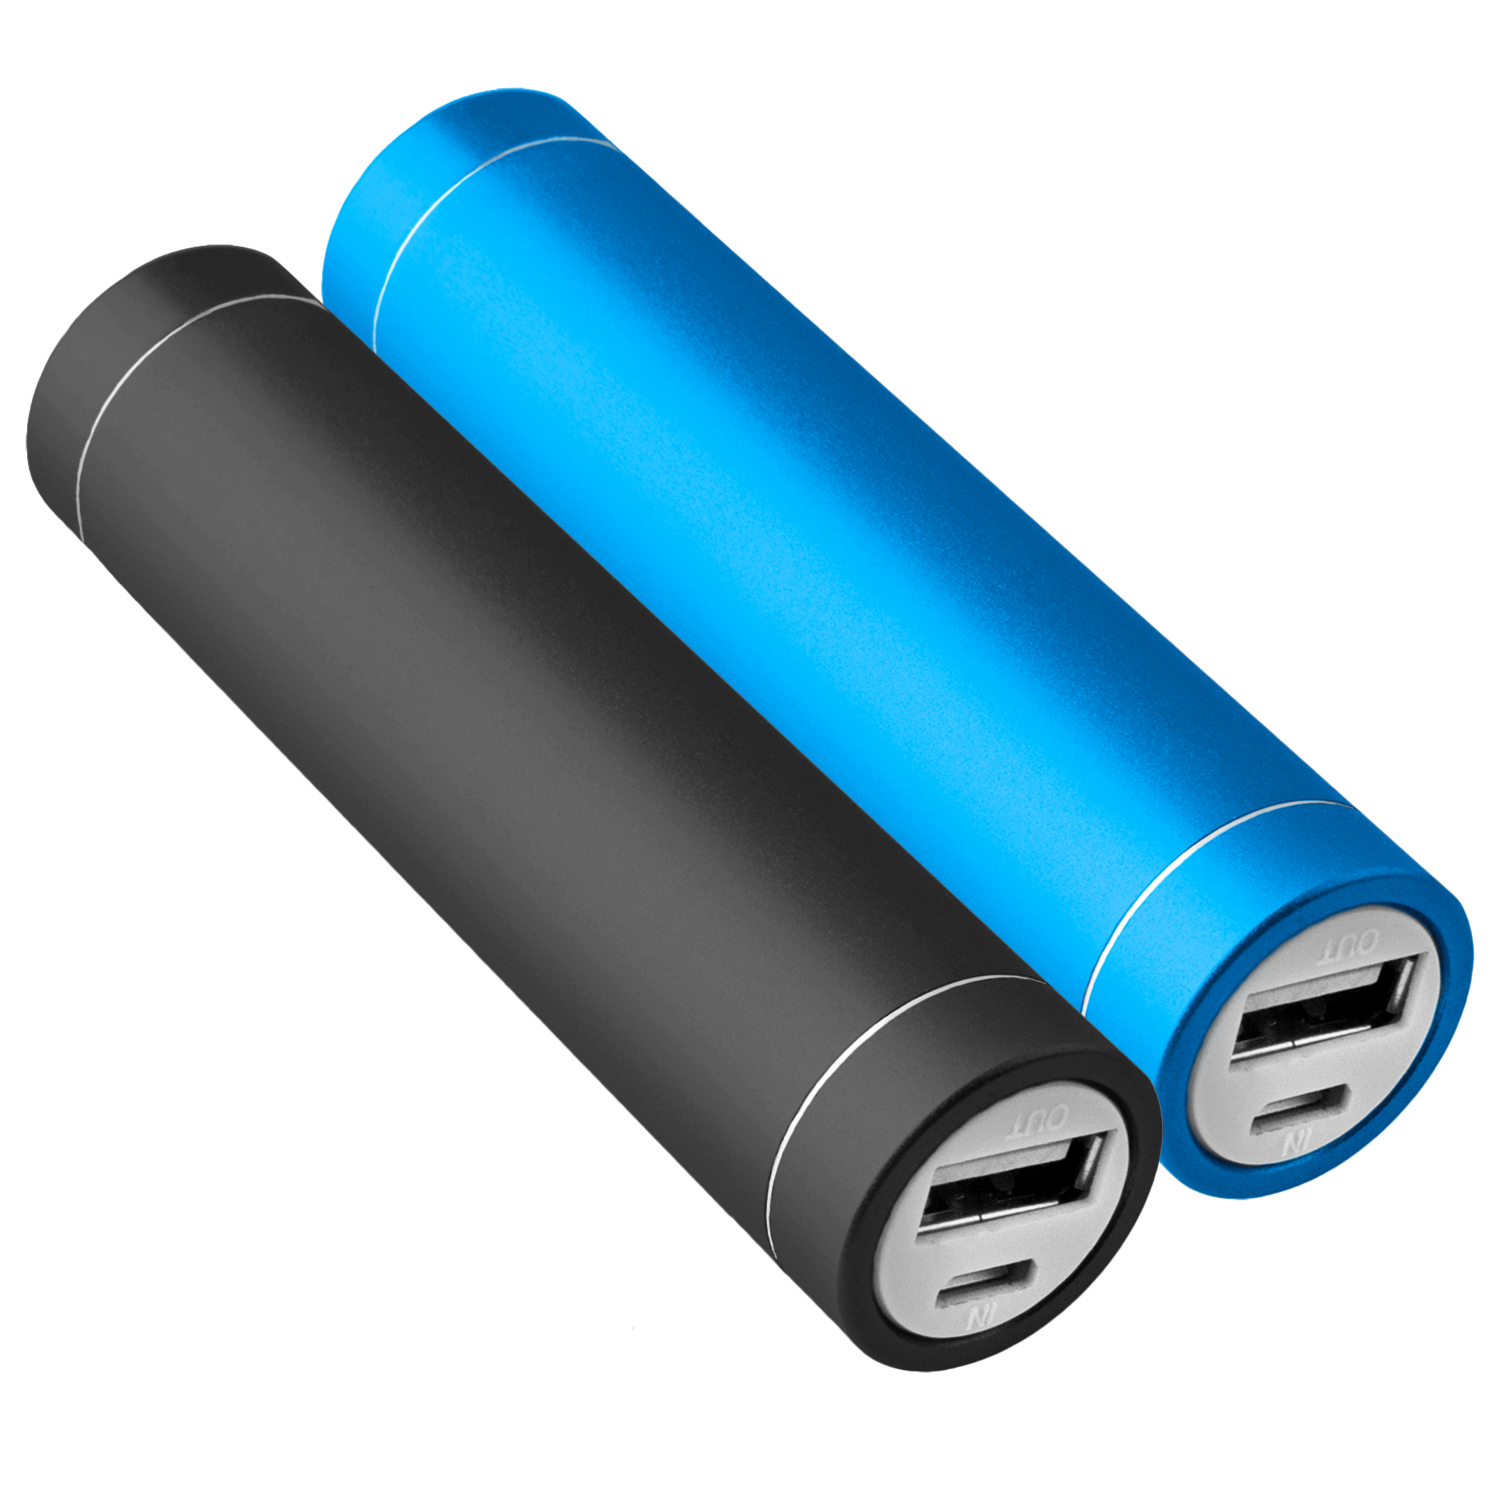 2x-Power-Bank-Akku-2600-mAh-Ladegeraet-extern-USB-iPhone-4-4S-blau-schwarz-NT003